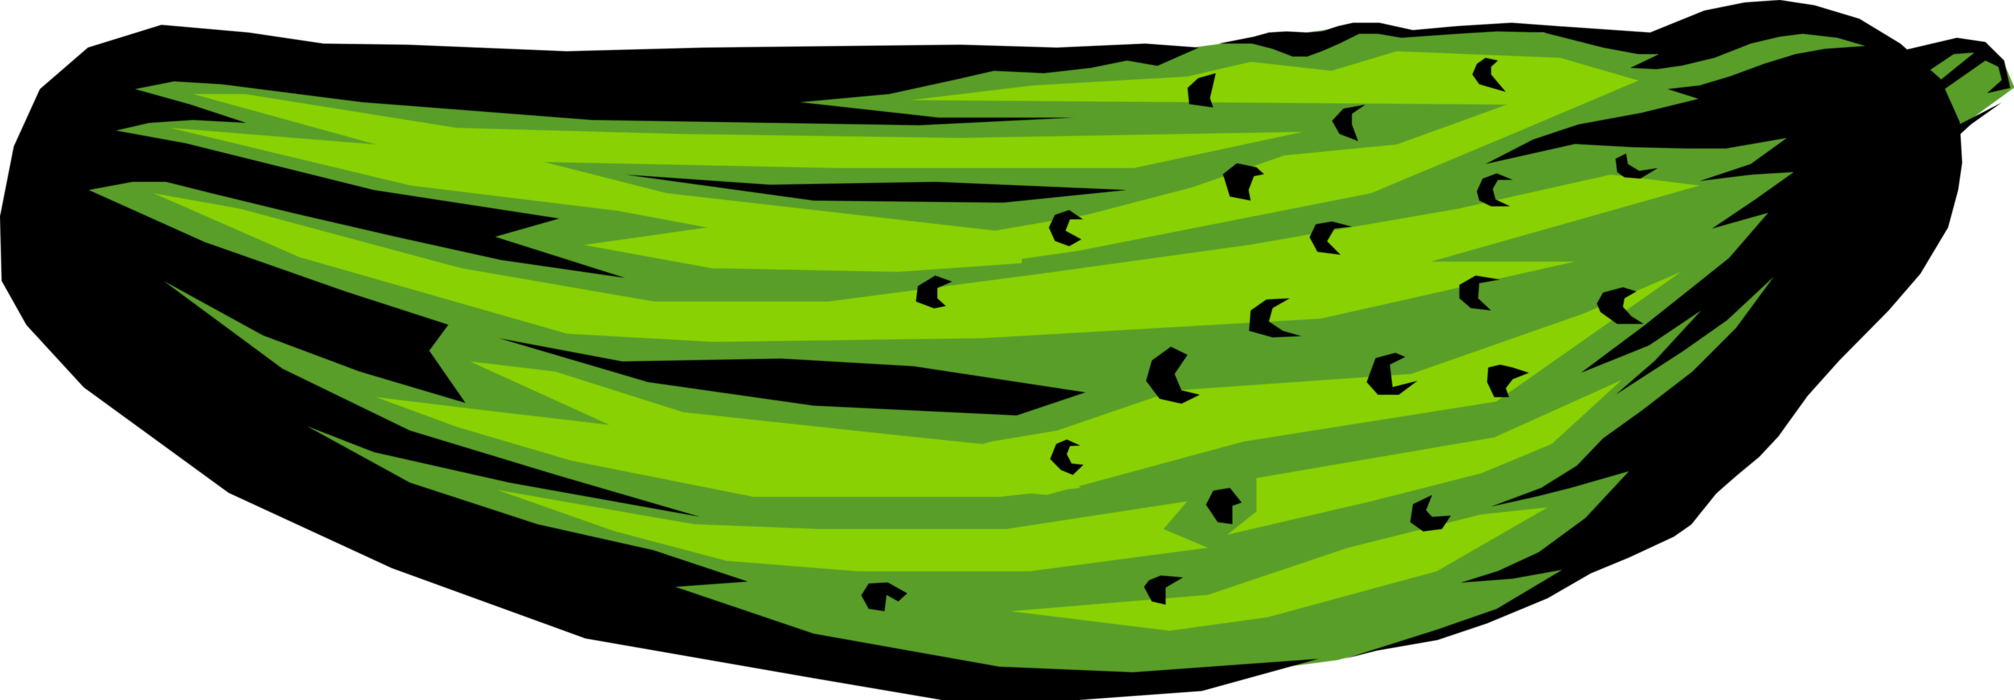 clip library Pickle vector black and white. Cucumber dill image illustration.